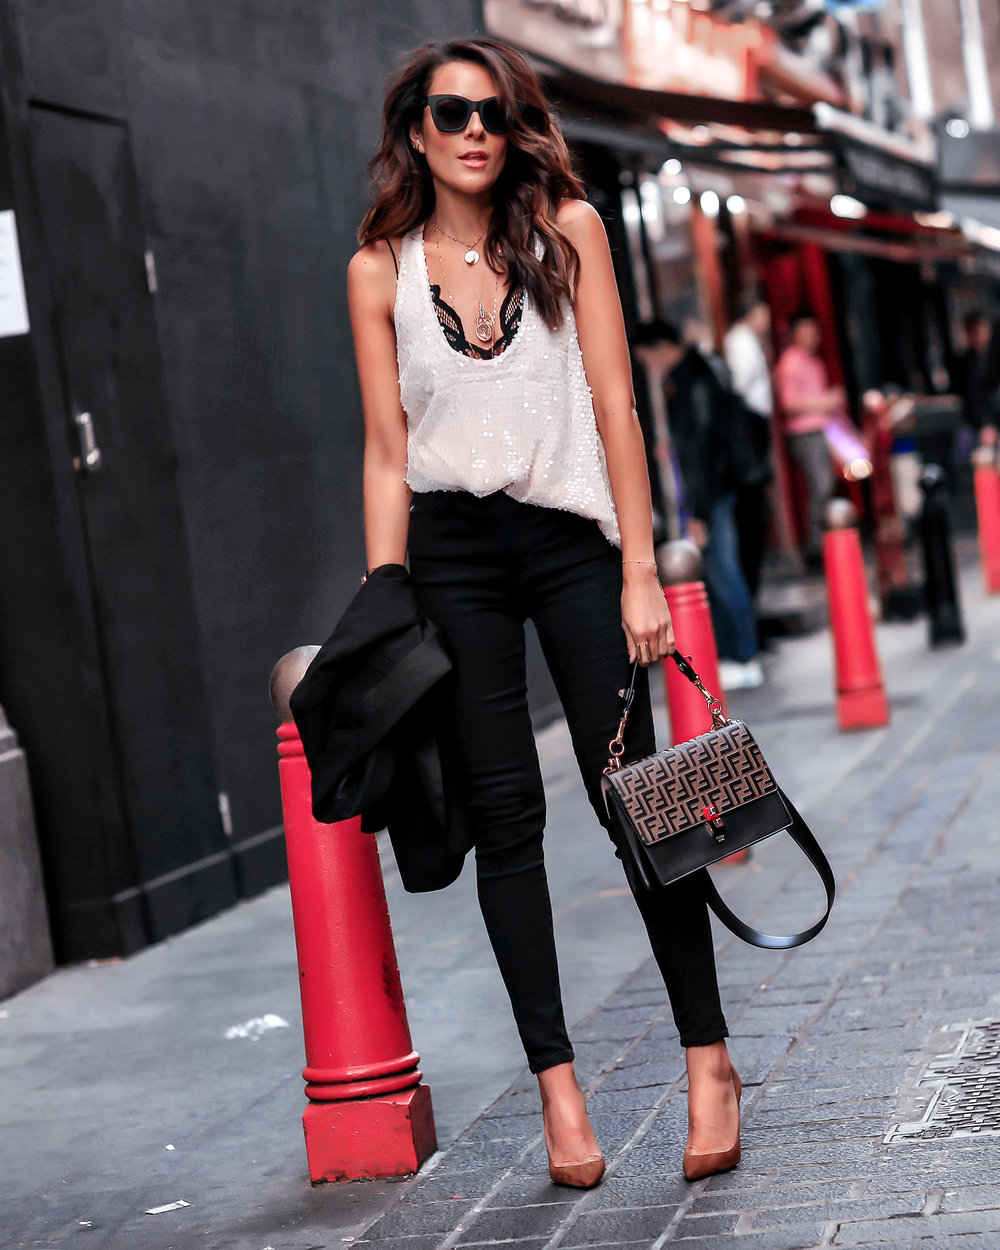 Brunette Woman In London Wearing VICIDOLLS Sequins Top Fendi Kan Bag